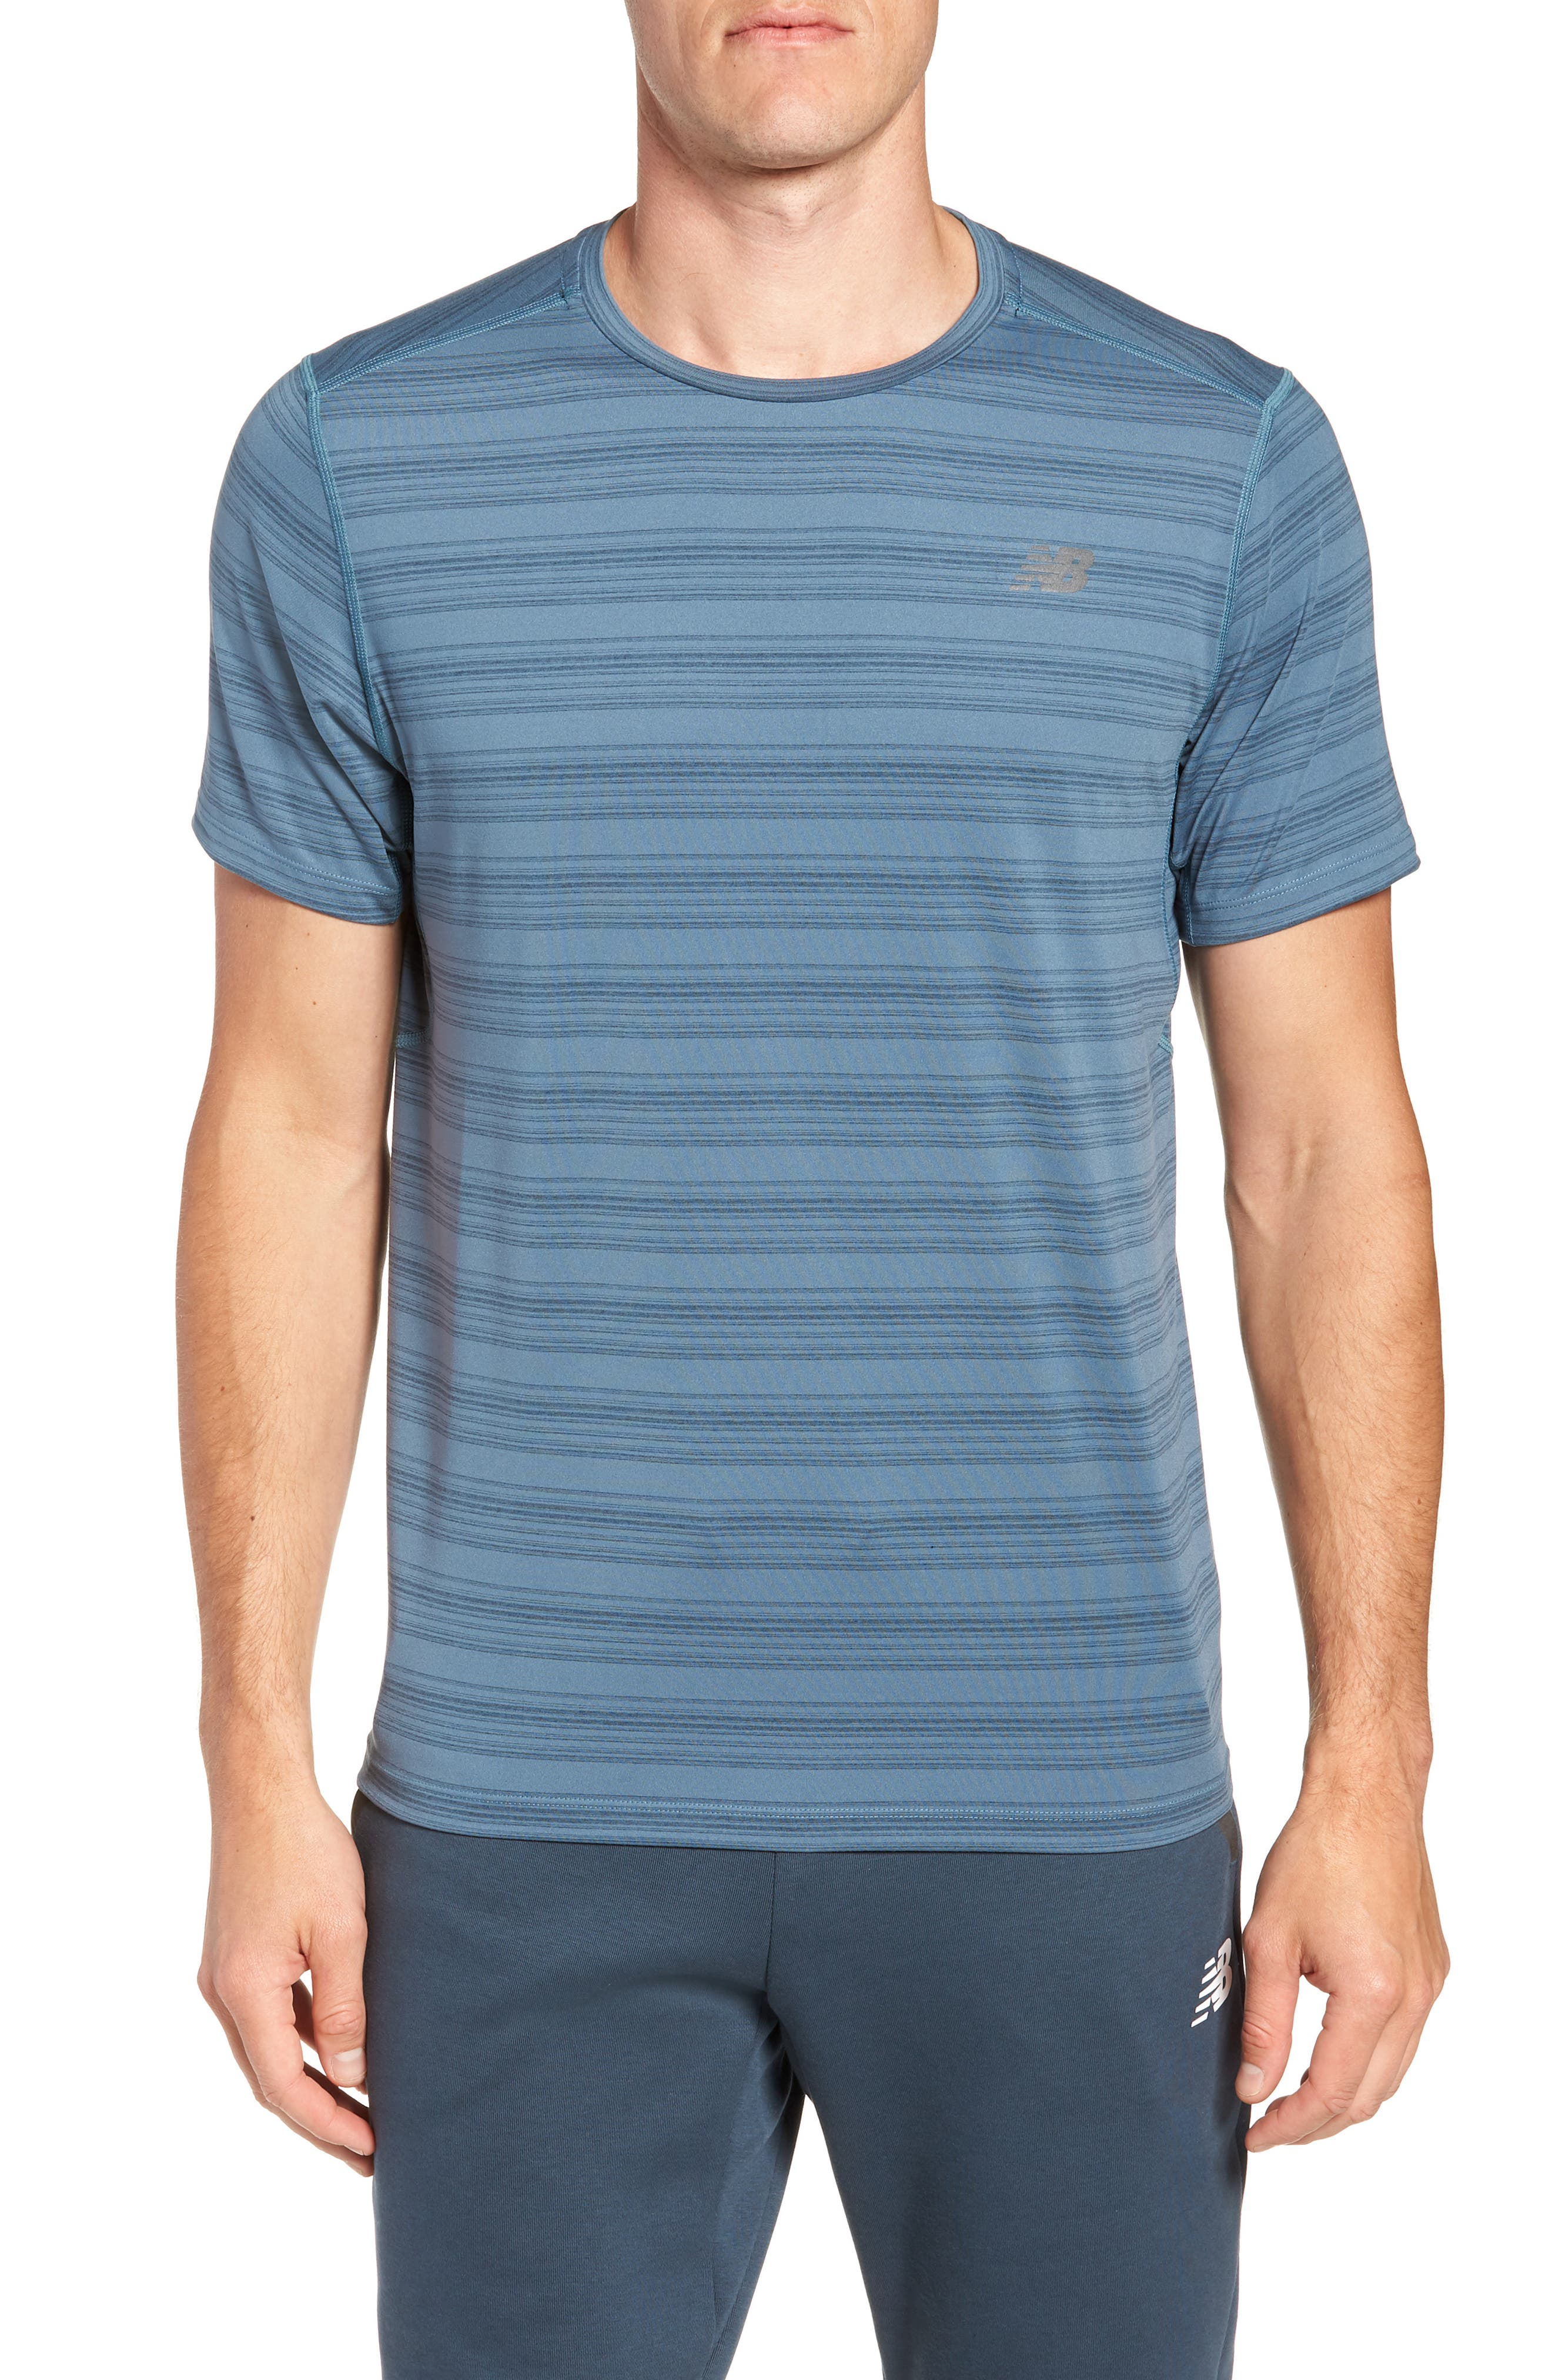 New Balance Anticipate Performance T-Shirt